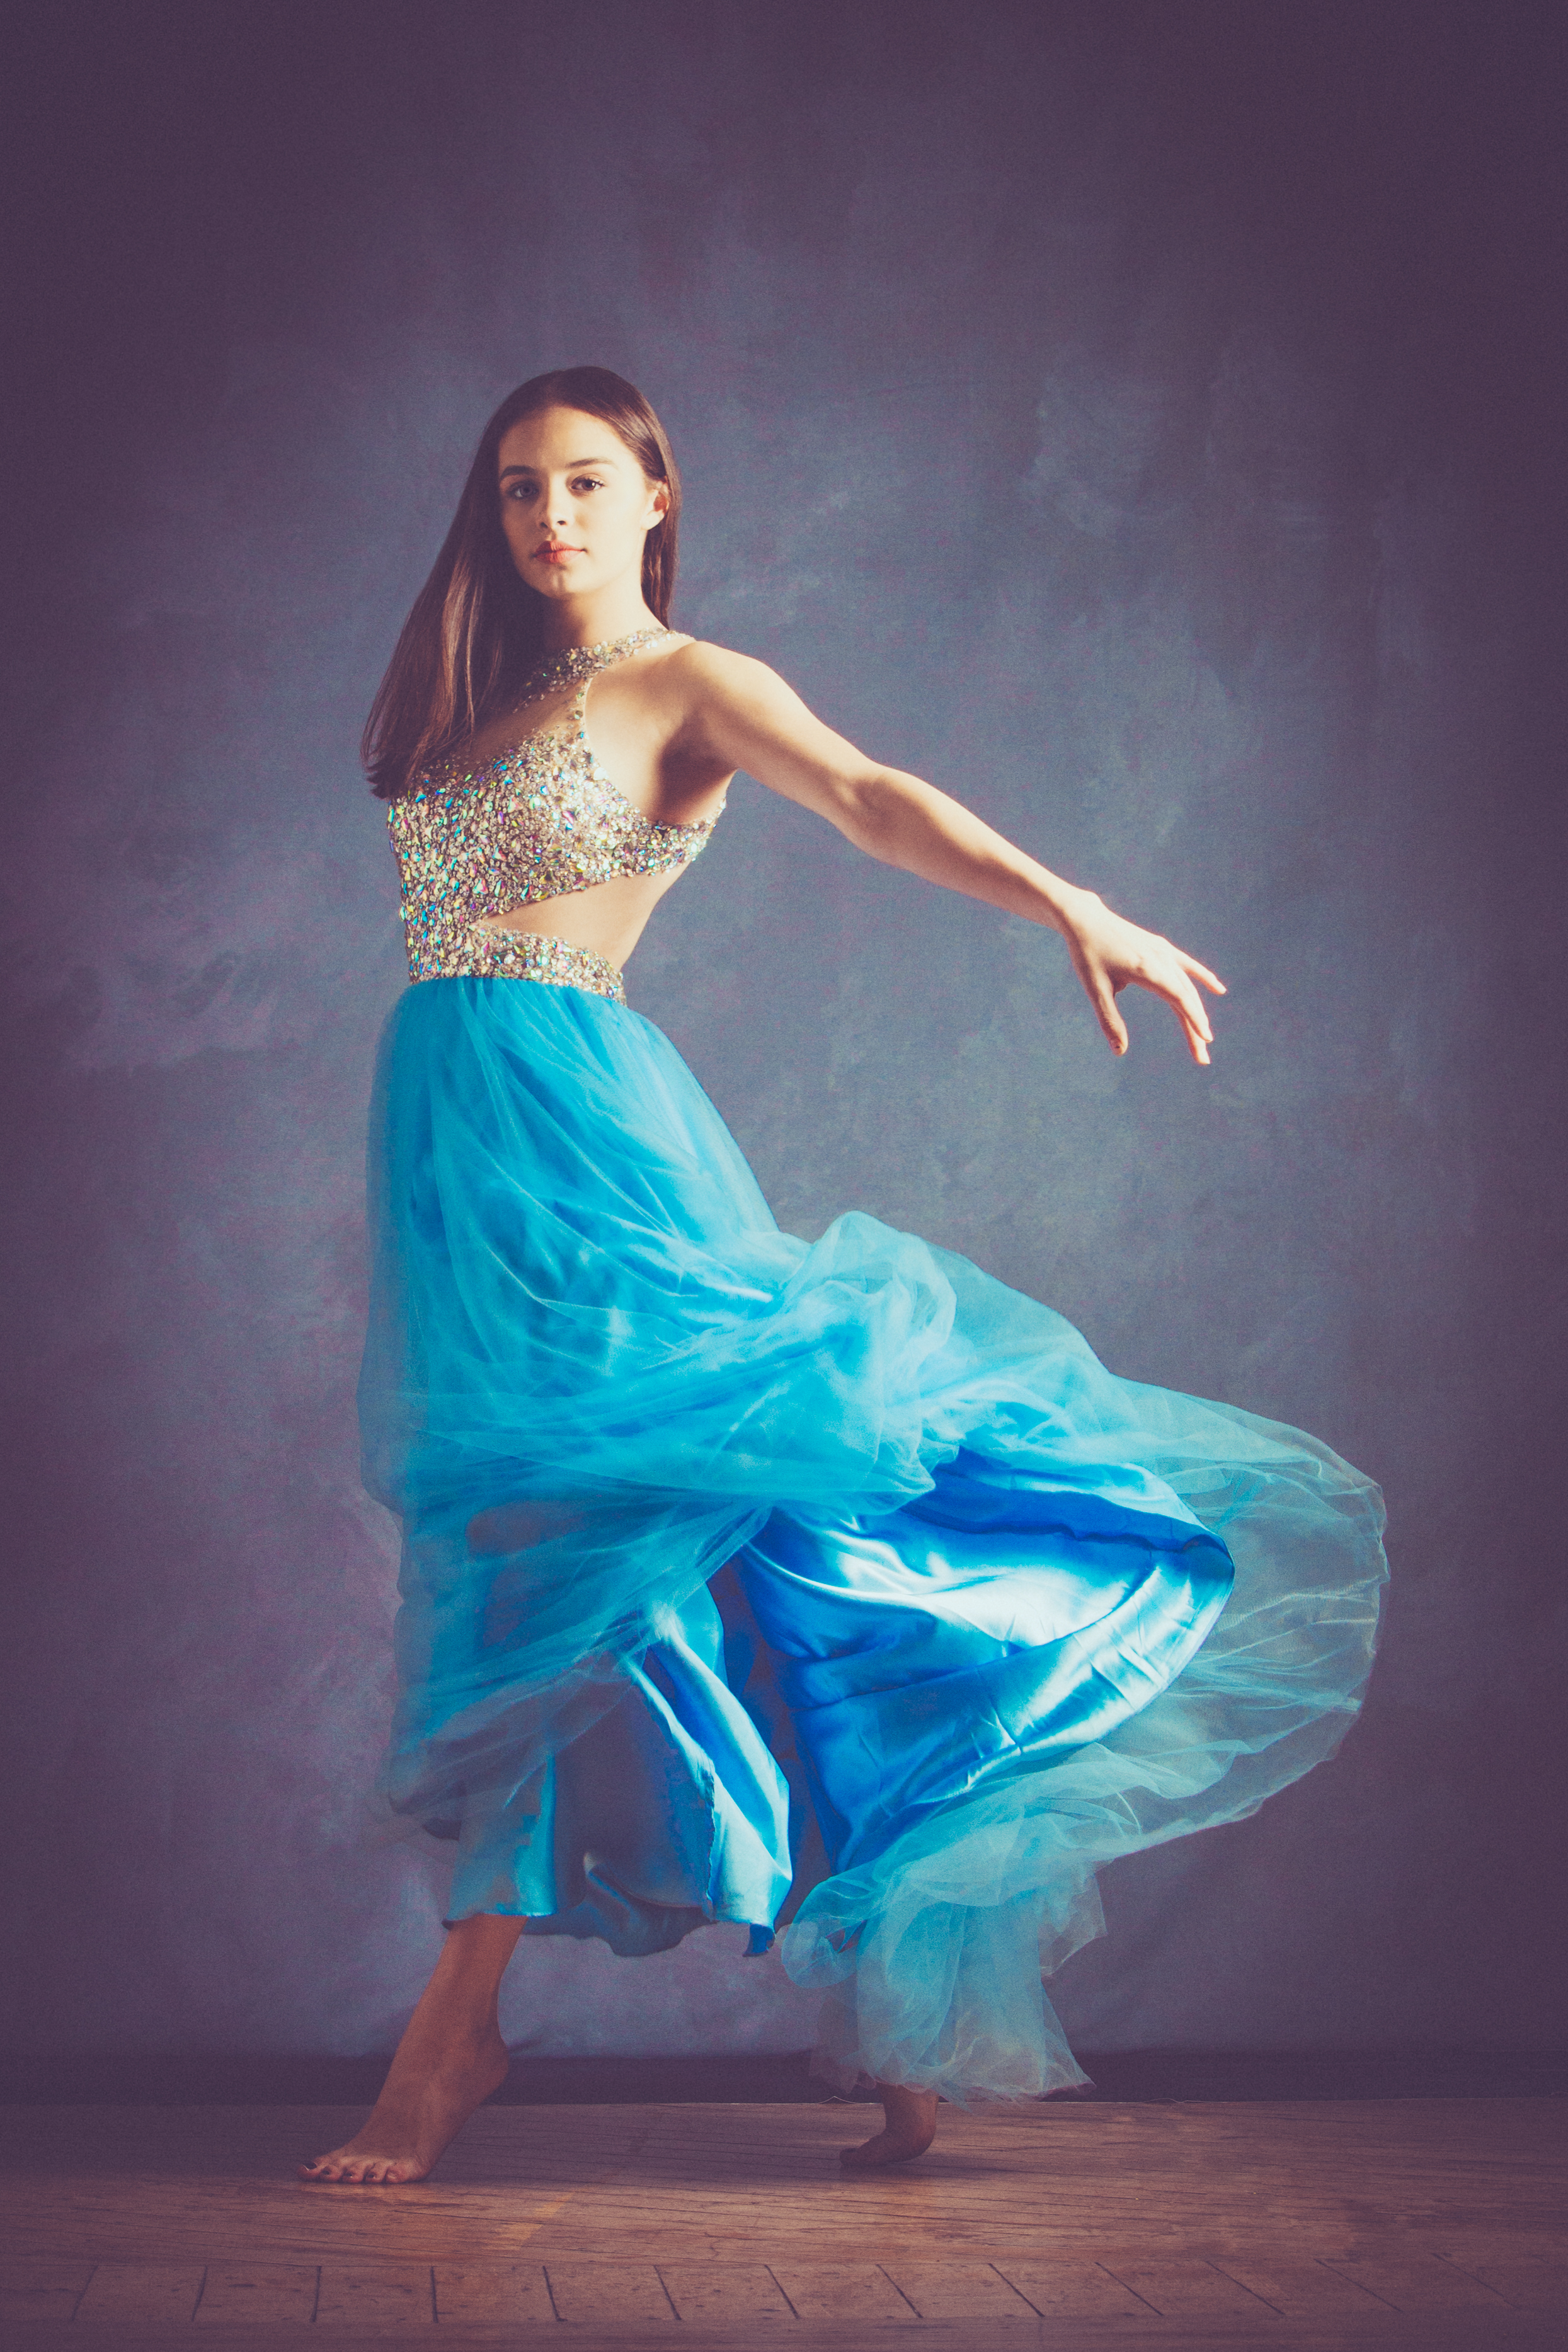 - Memory Makers will work with your Dancer to make her portfolio stand out.